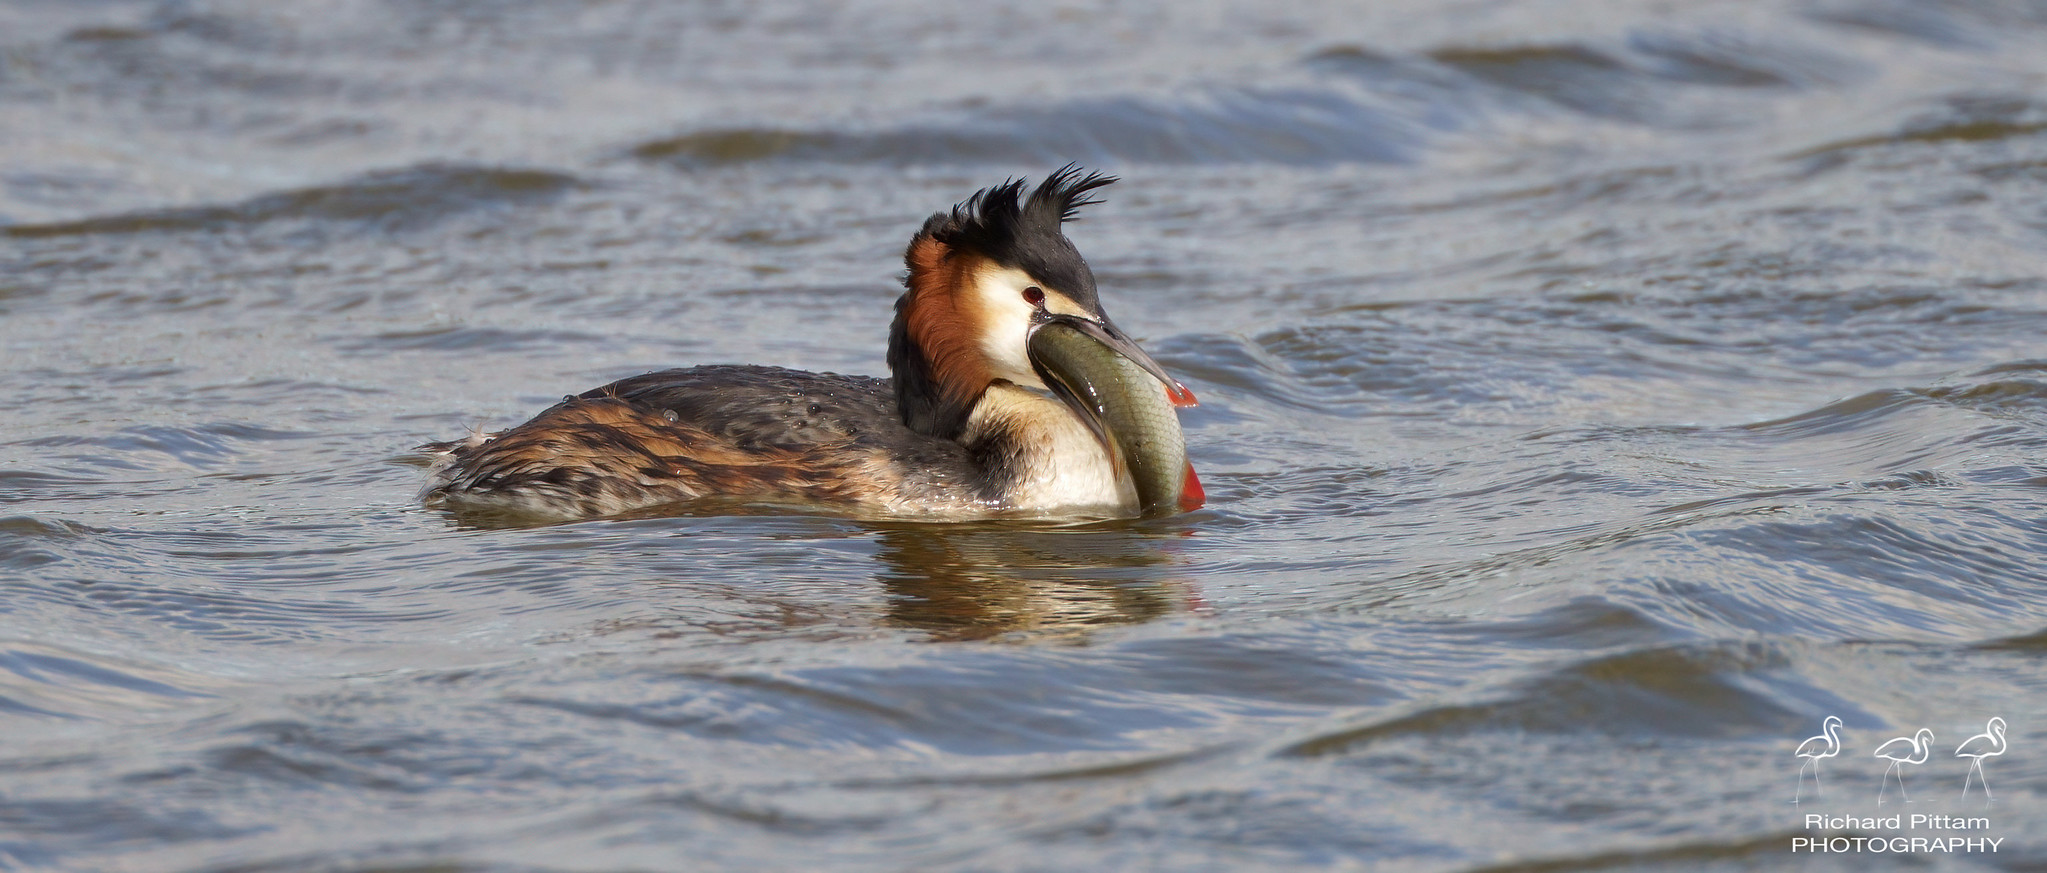 Great Crested Grebe - 'a big fish supper'